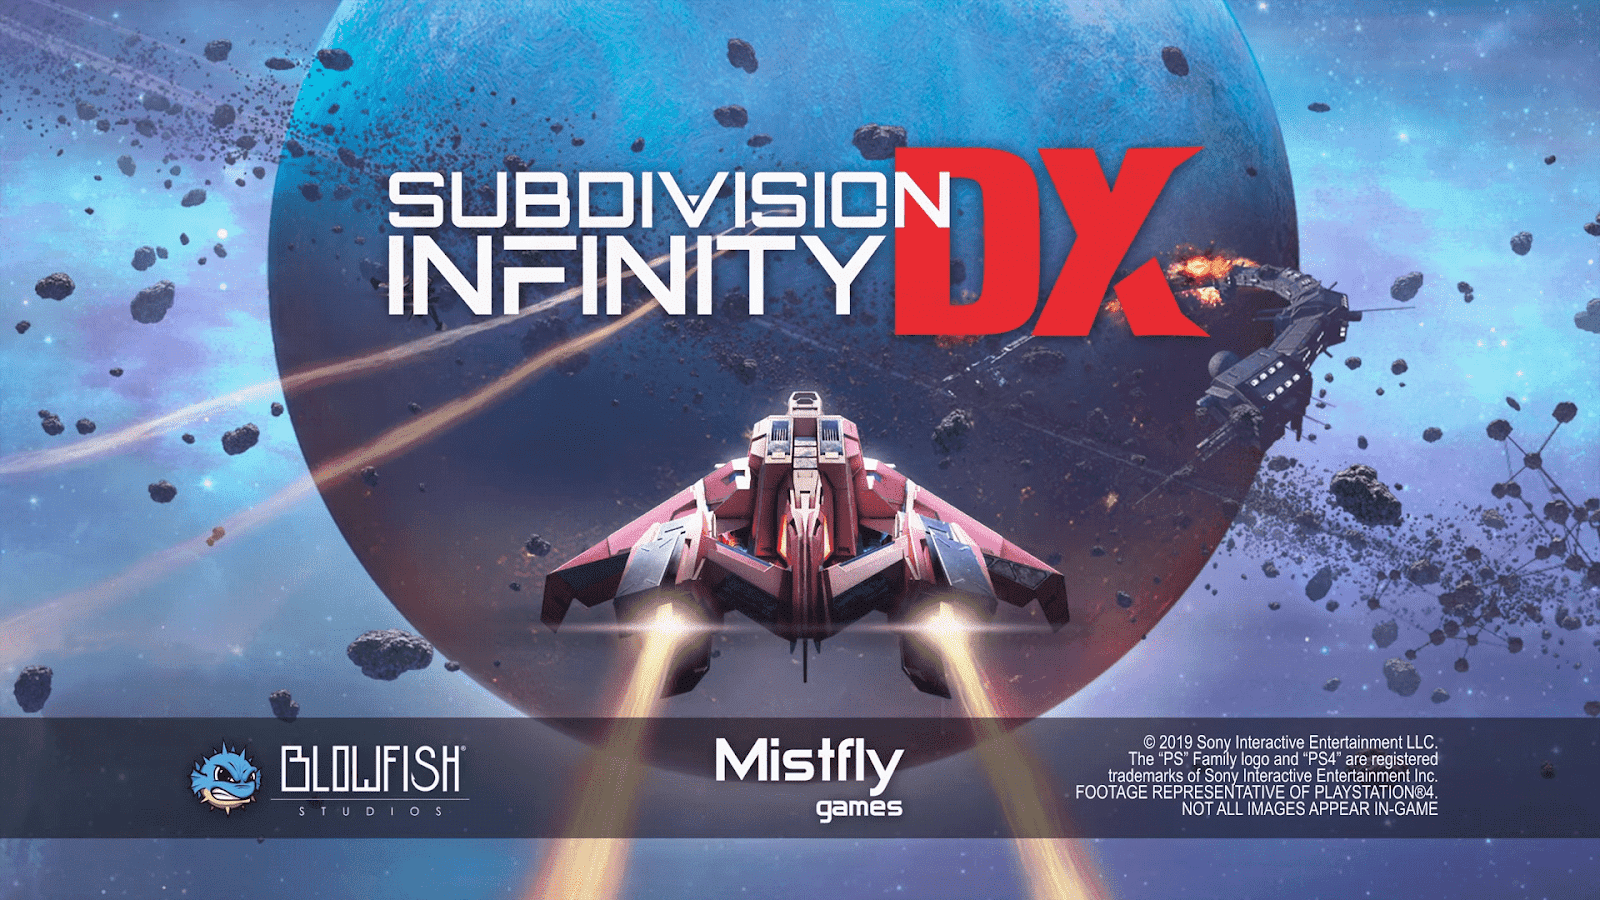 subdivision-infinity-dx